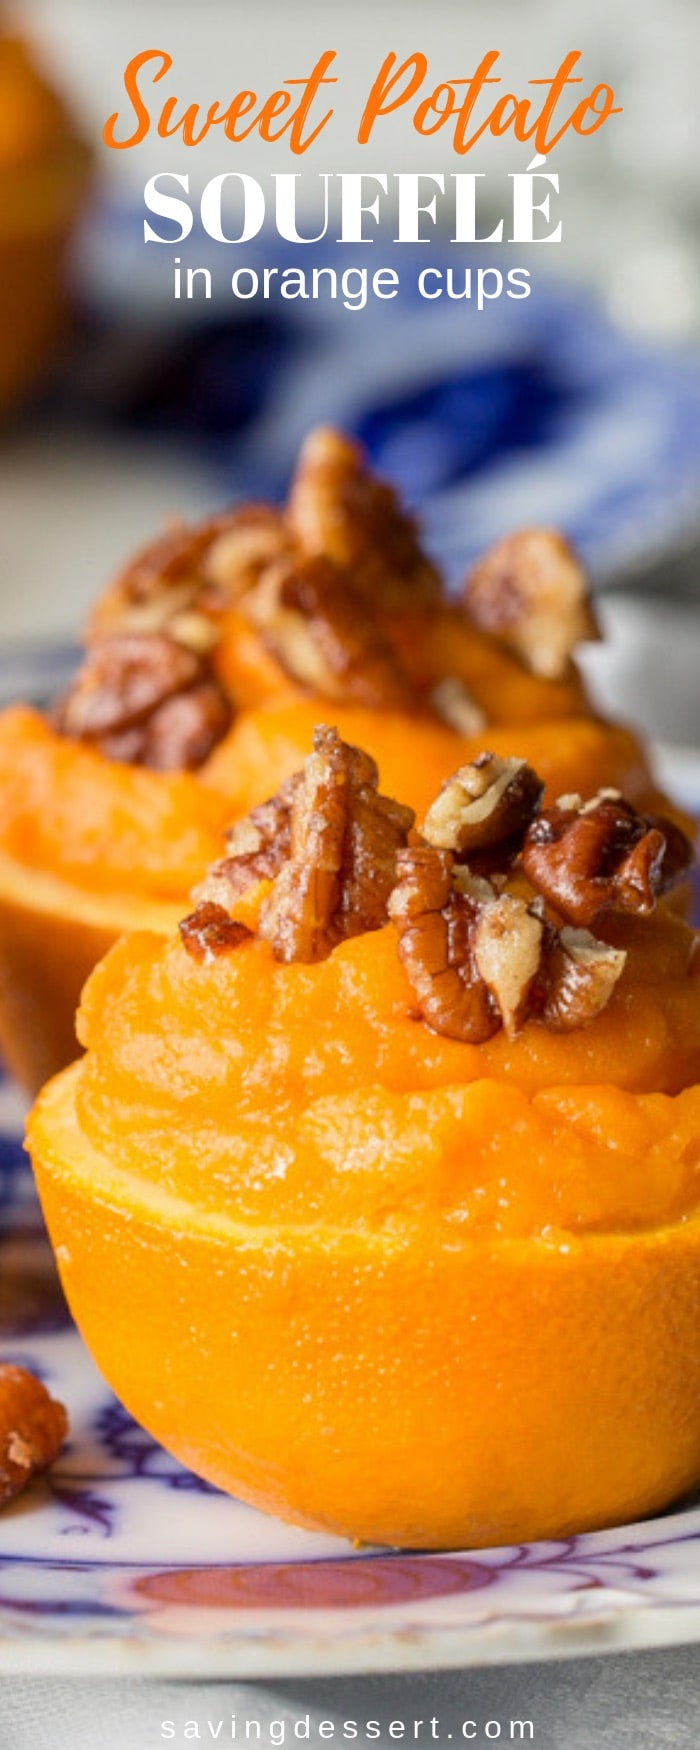 A light fluffy sweet potato filling flavored with fresh squeezed orange juice, topped with cinnamon sugar pecans and baked in an orange cup - a lovely side dish for your holiday buffet table! #orangesweetpotatoes #sweetpotatoes #sweetpotatosouffle #holidaysidedish #soufflé #potatoes #thanksgiving #christmas